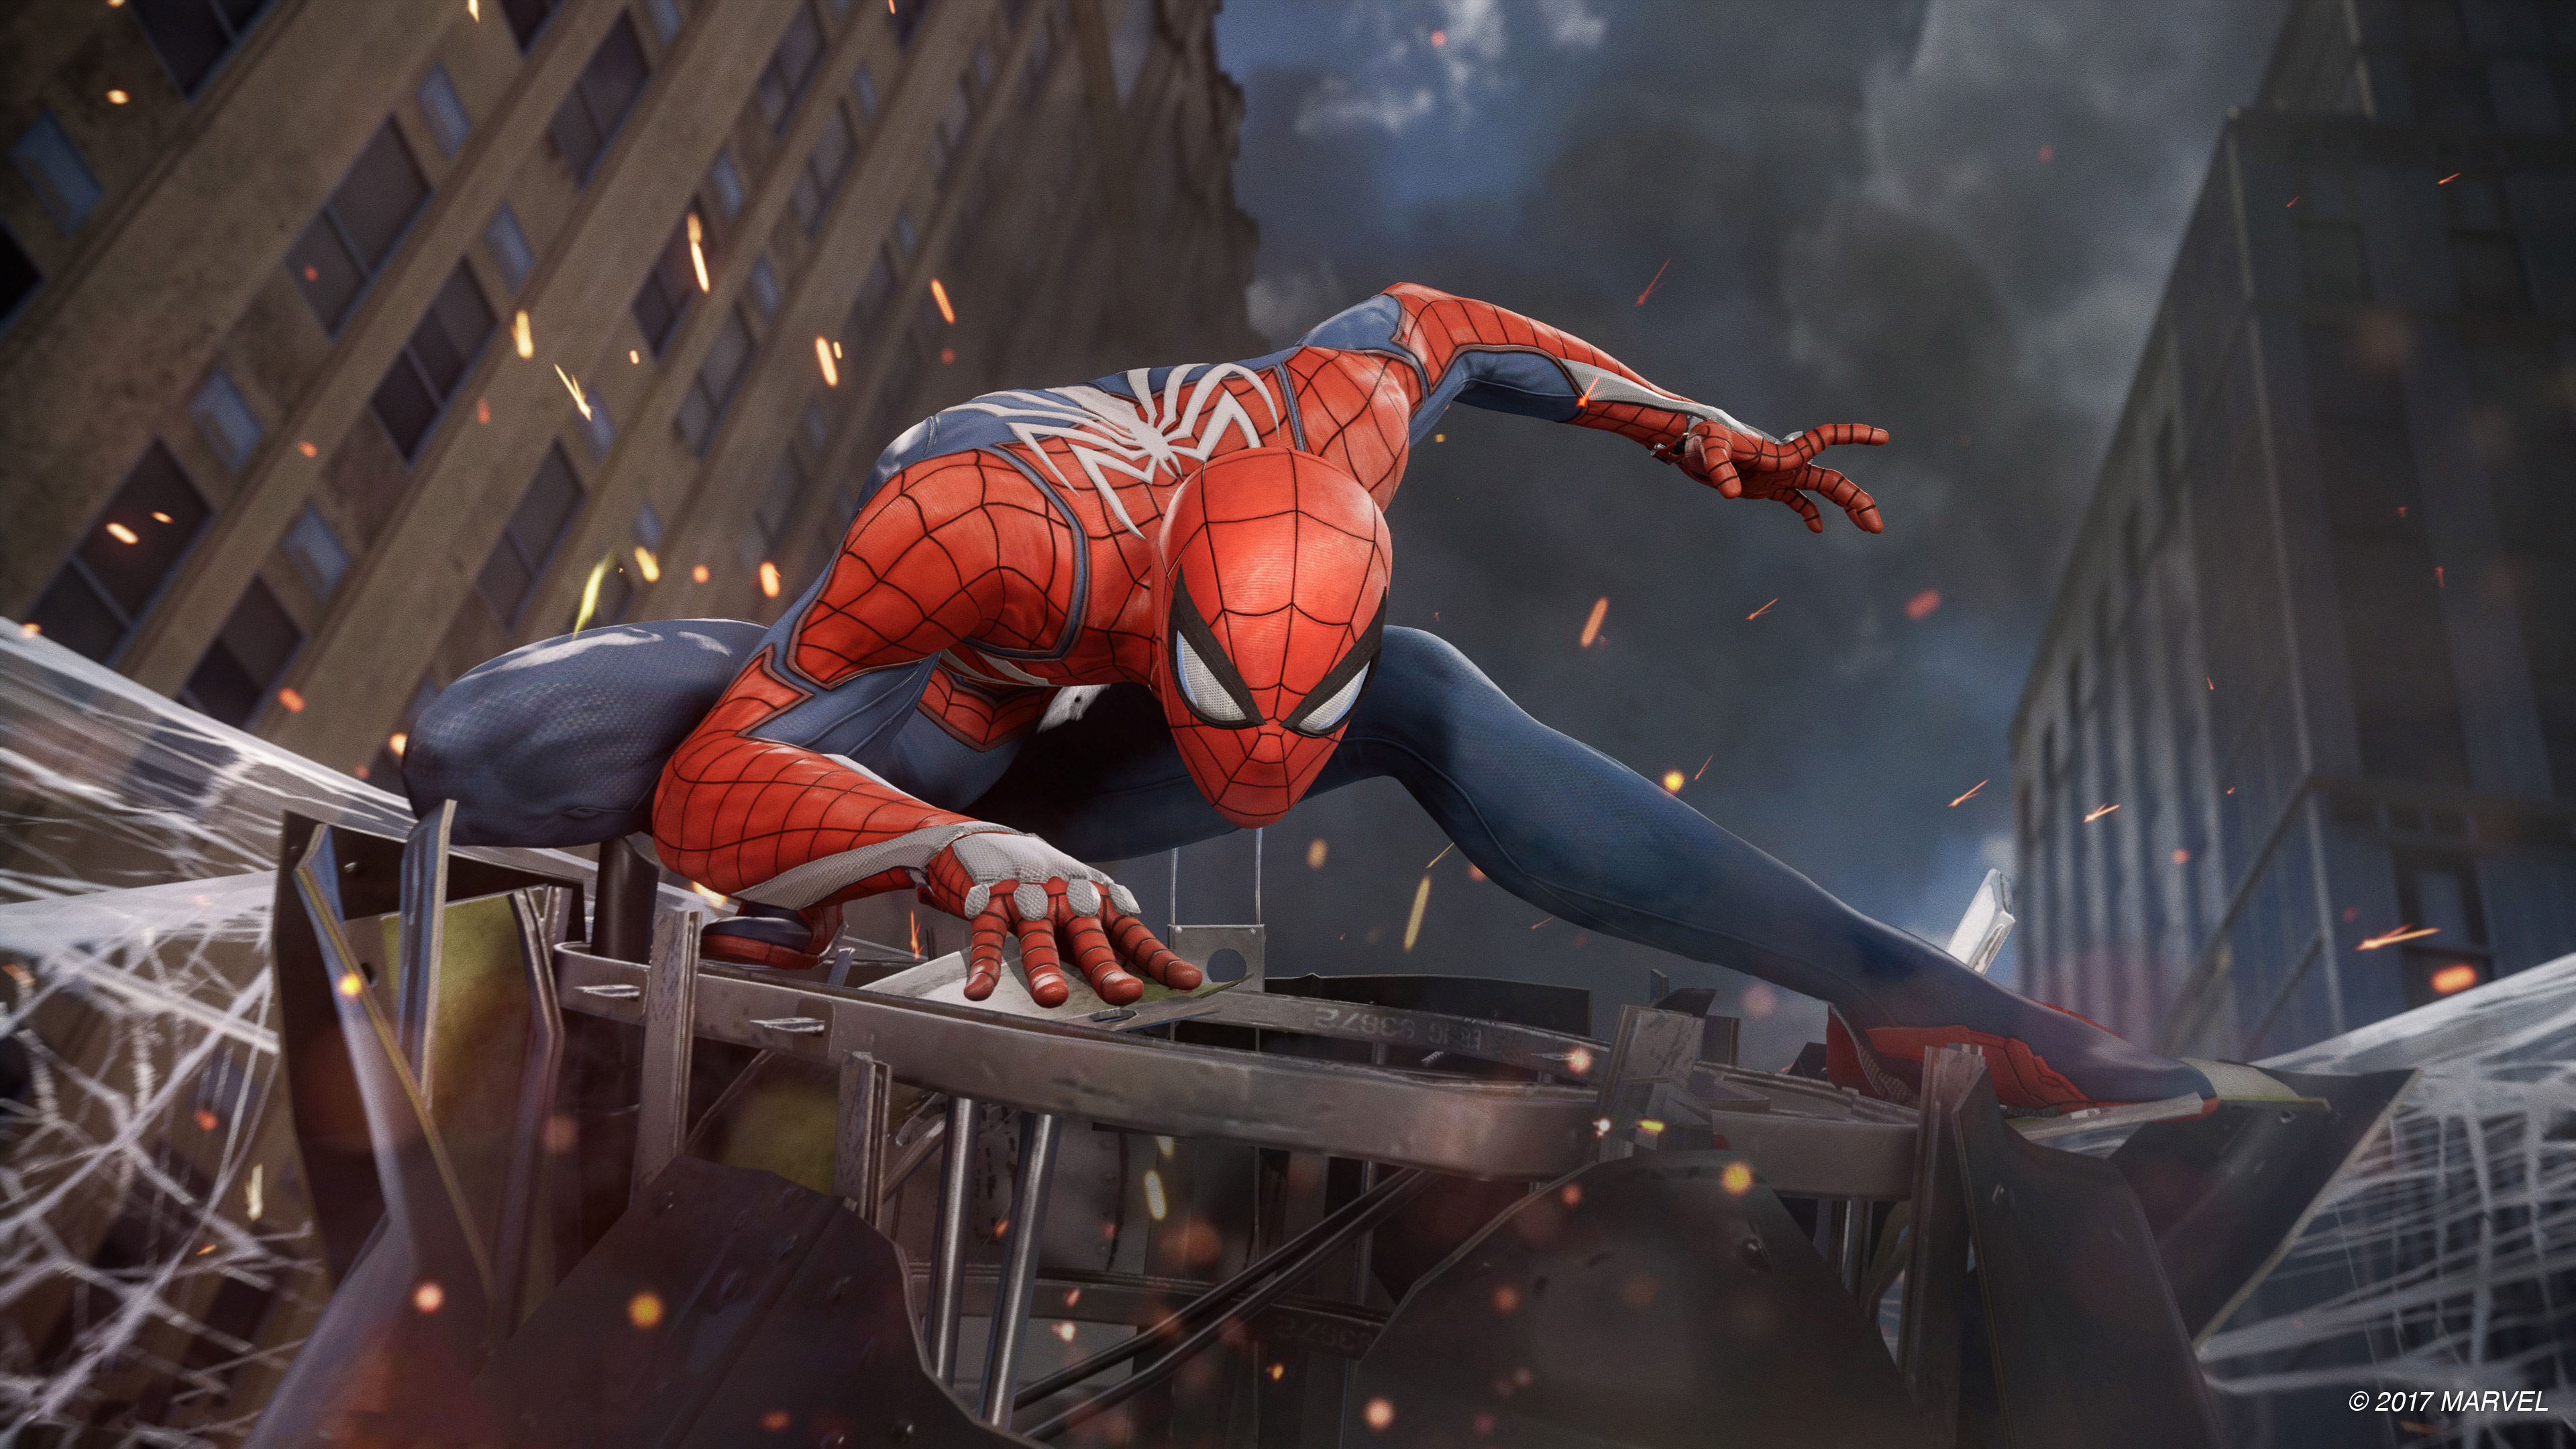 53 Spider Man PS4 HD Wallpapers Background Images   Wallpaper 3840x2160